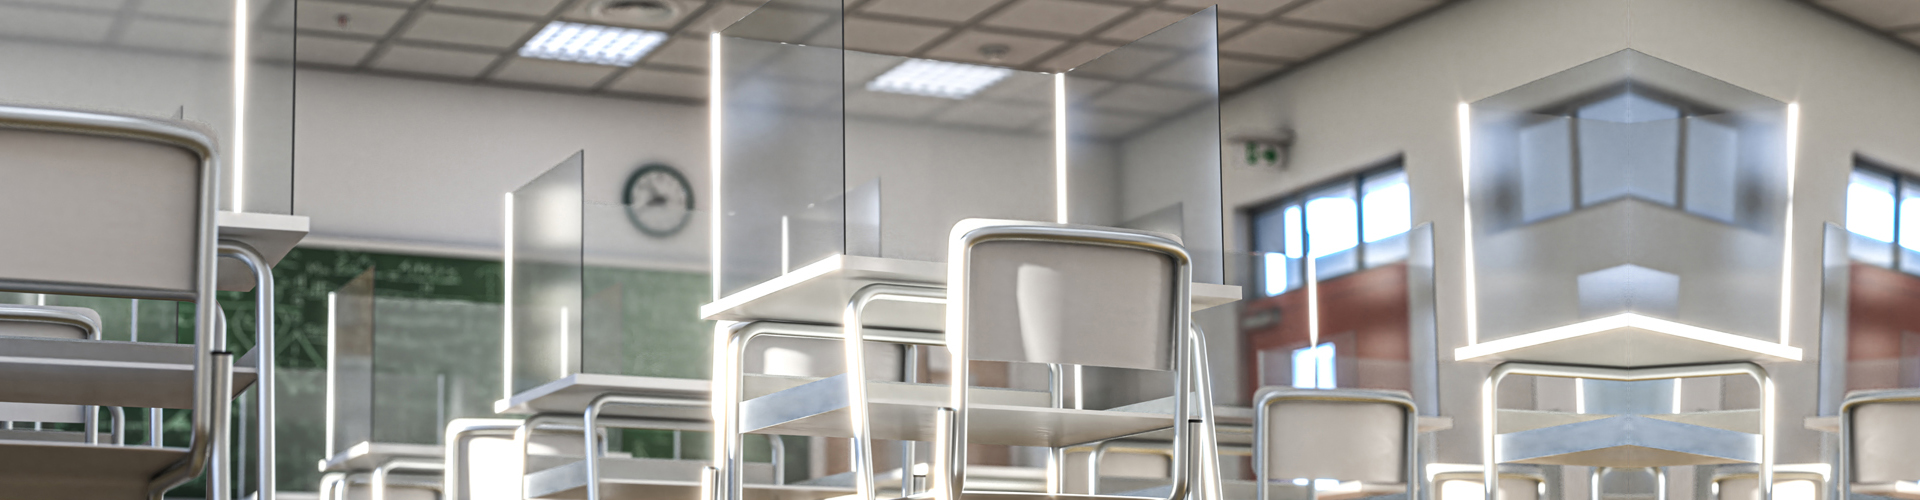 classroom chairs with sneeze guards